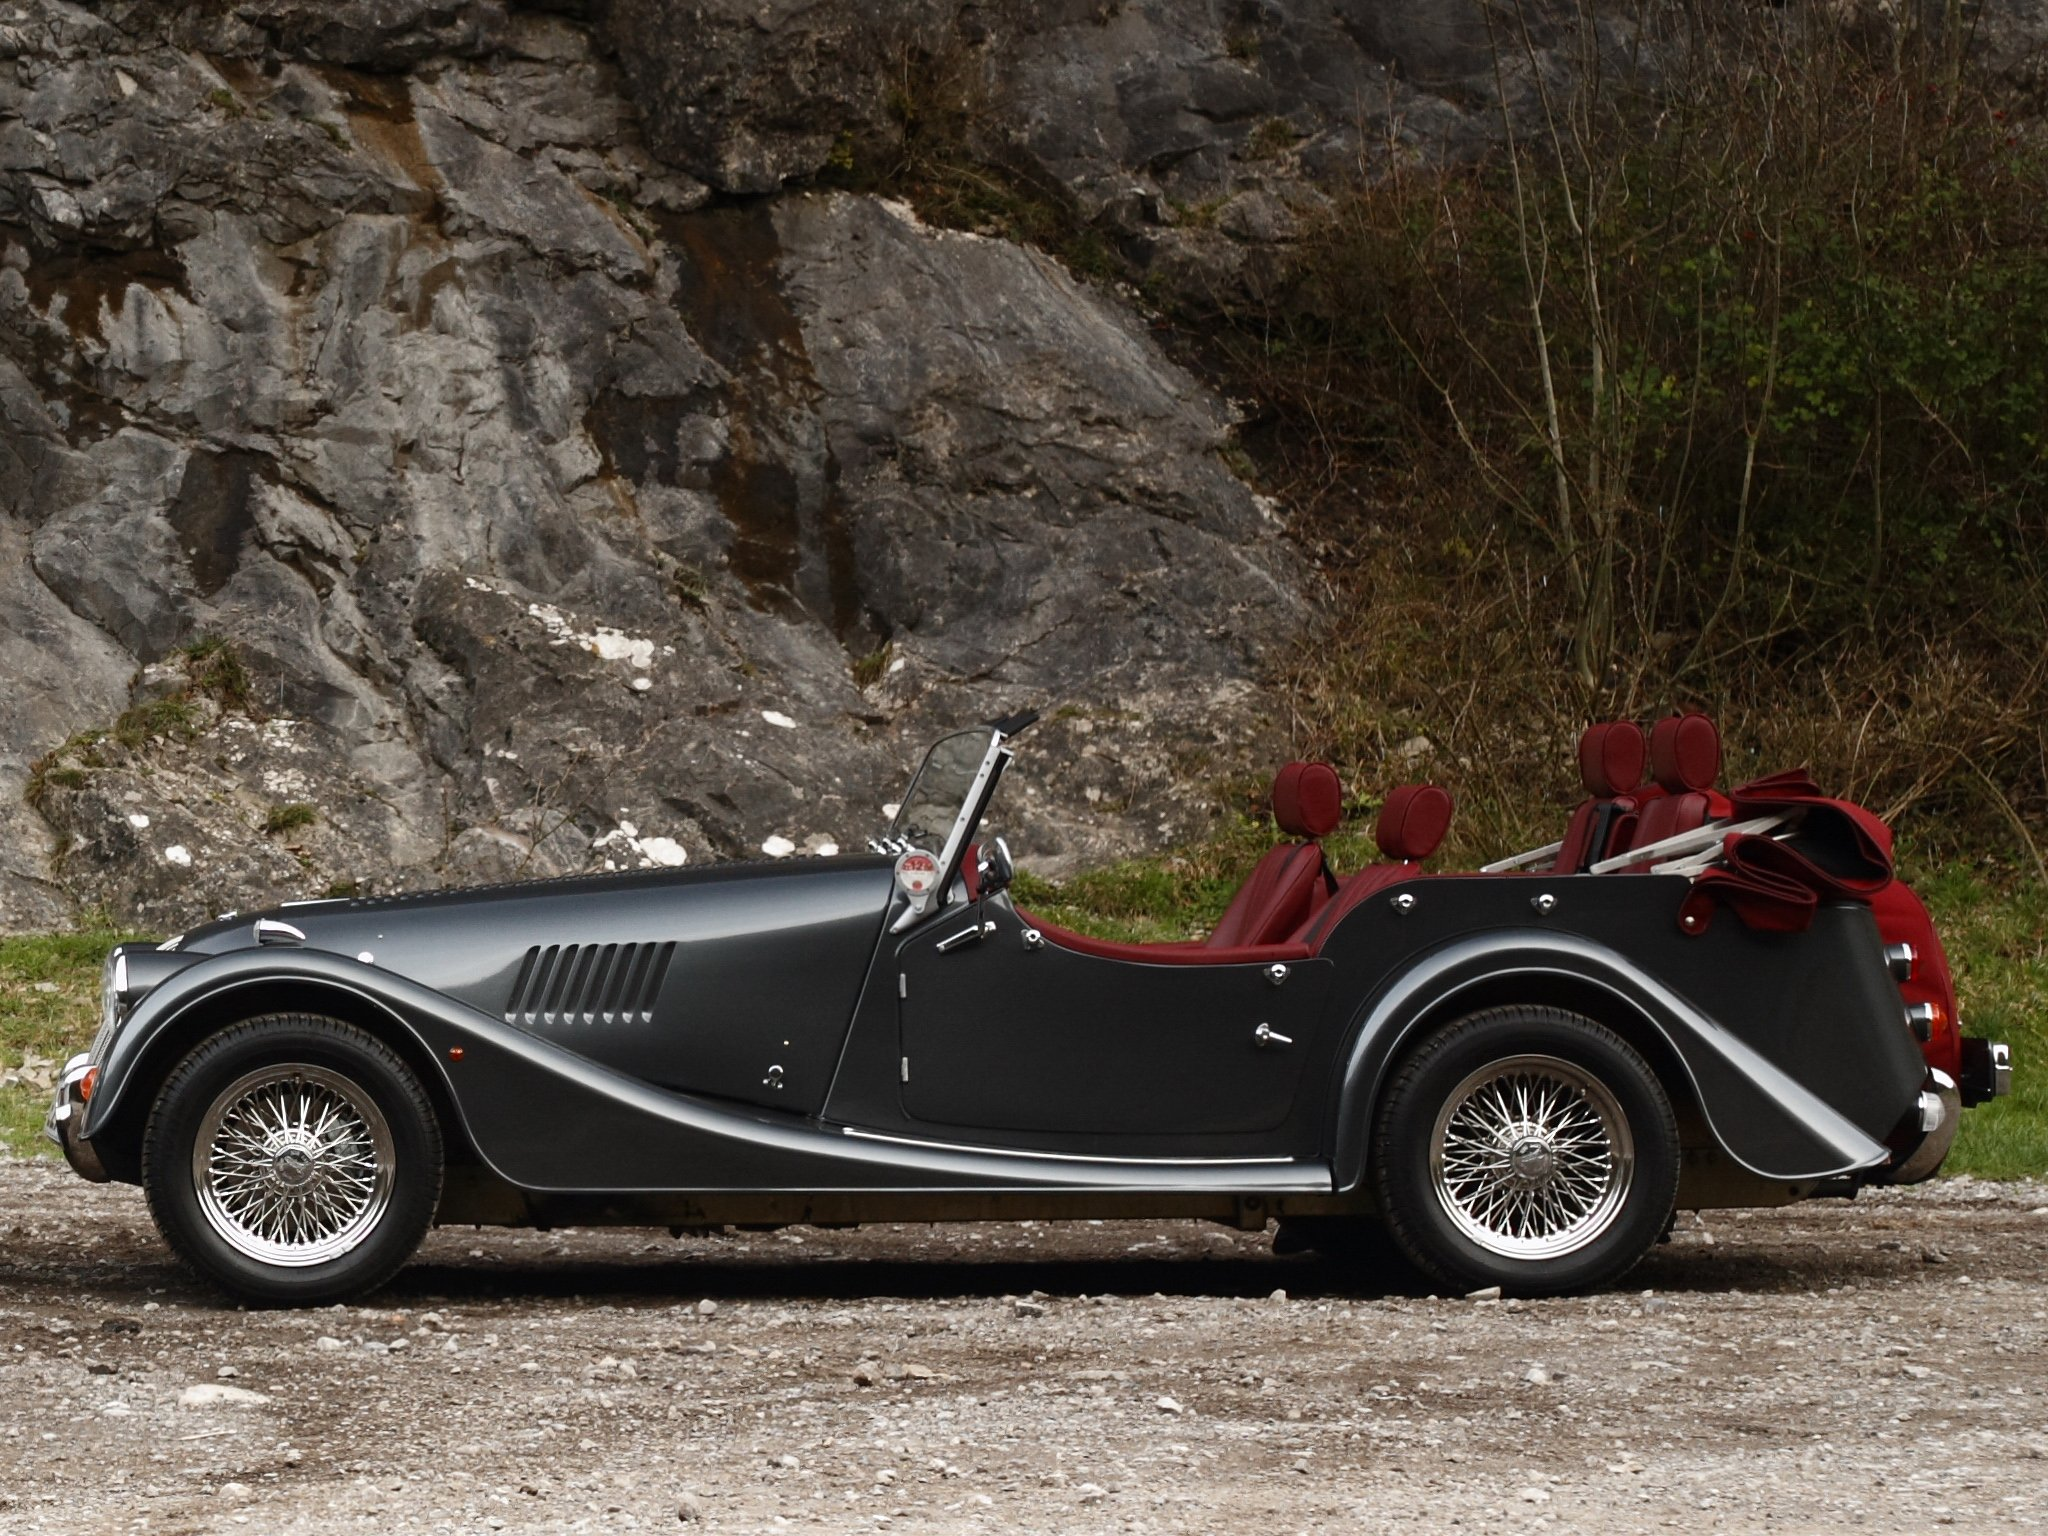 2006 Morgan 4 Seater #6